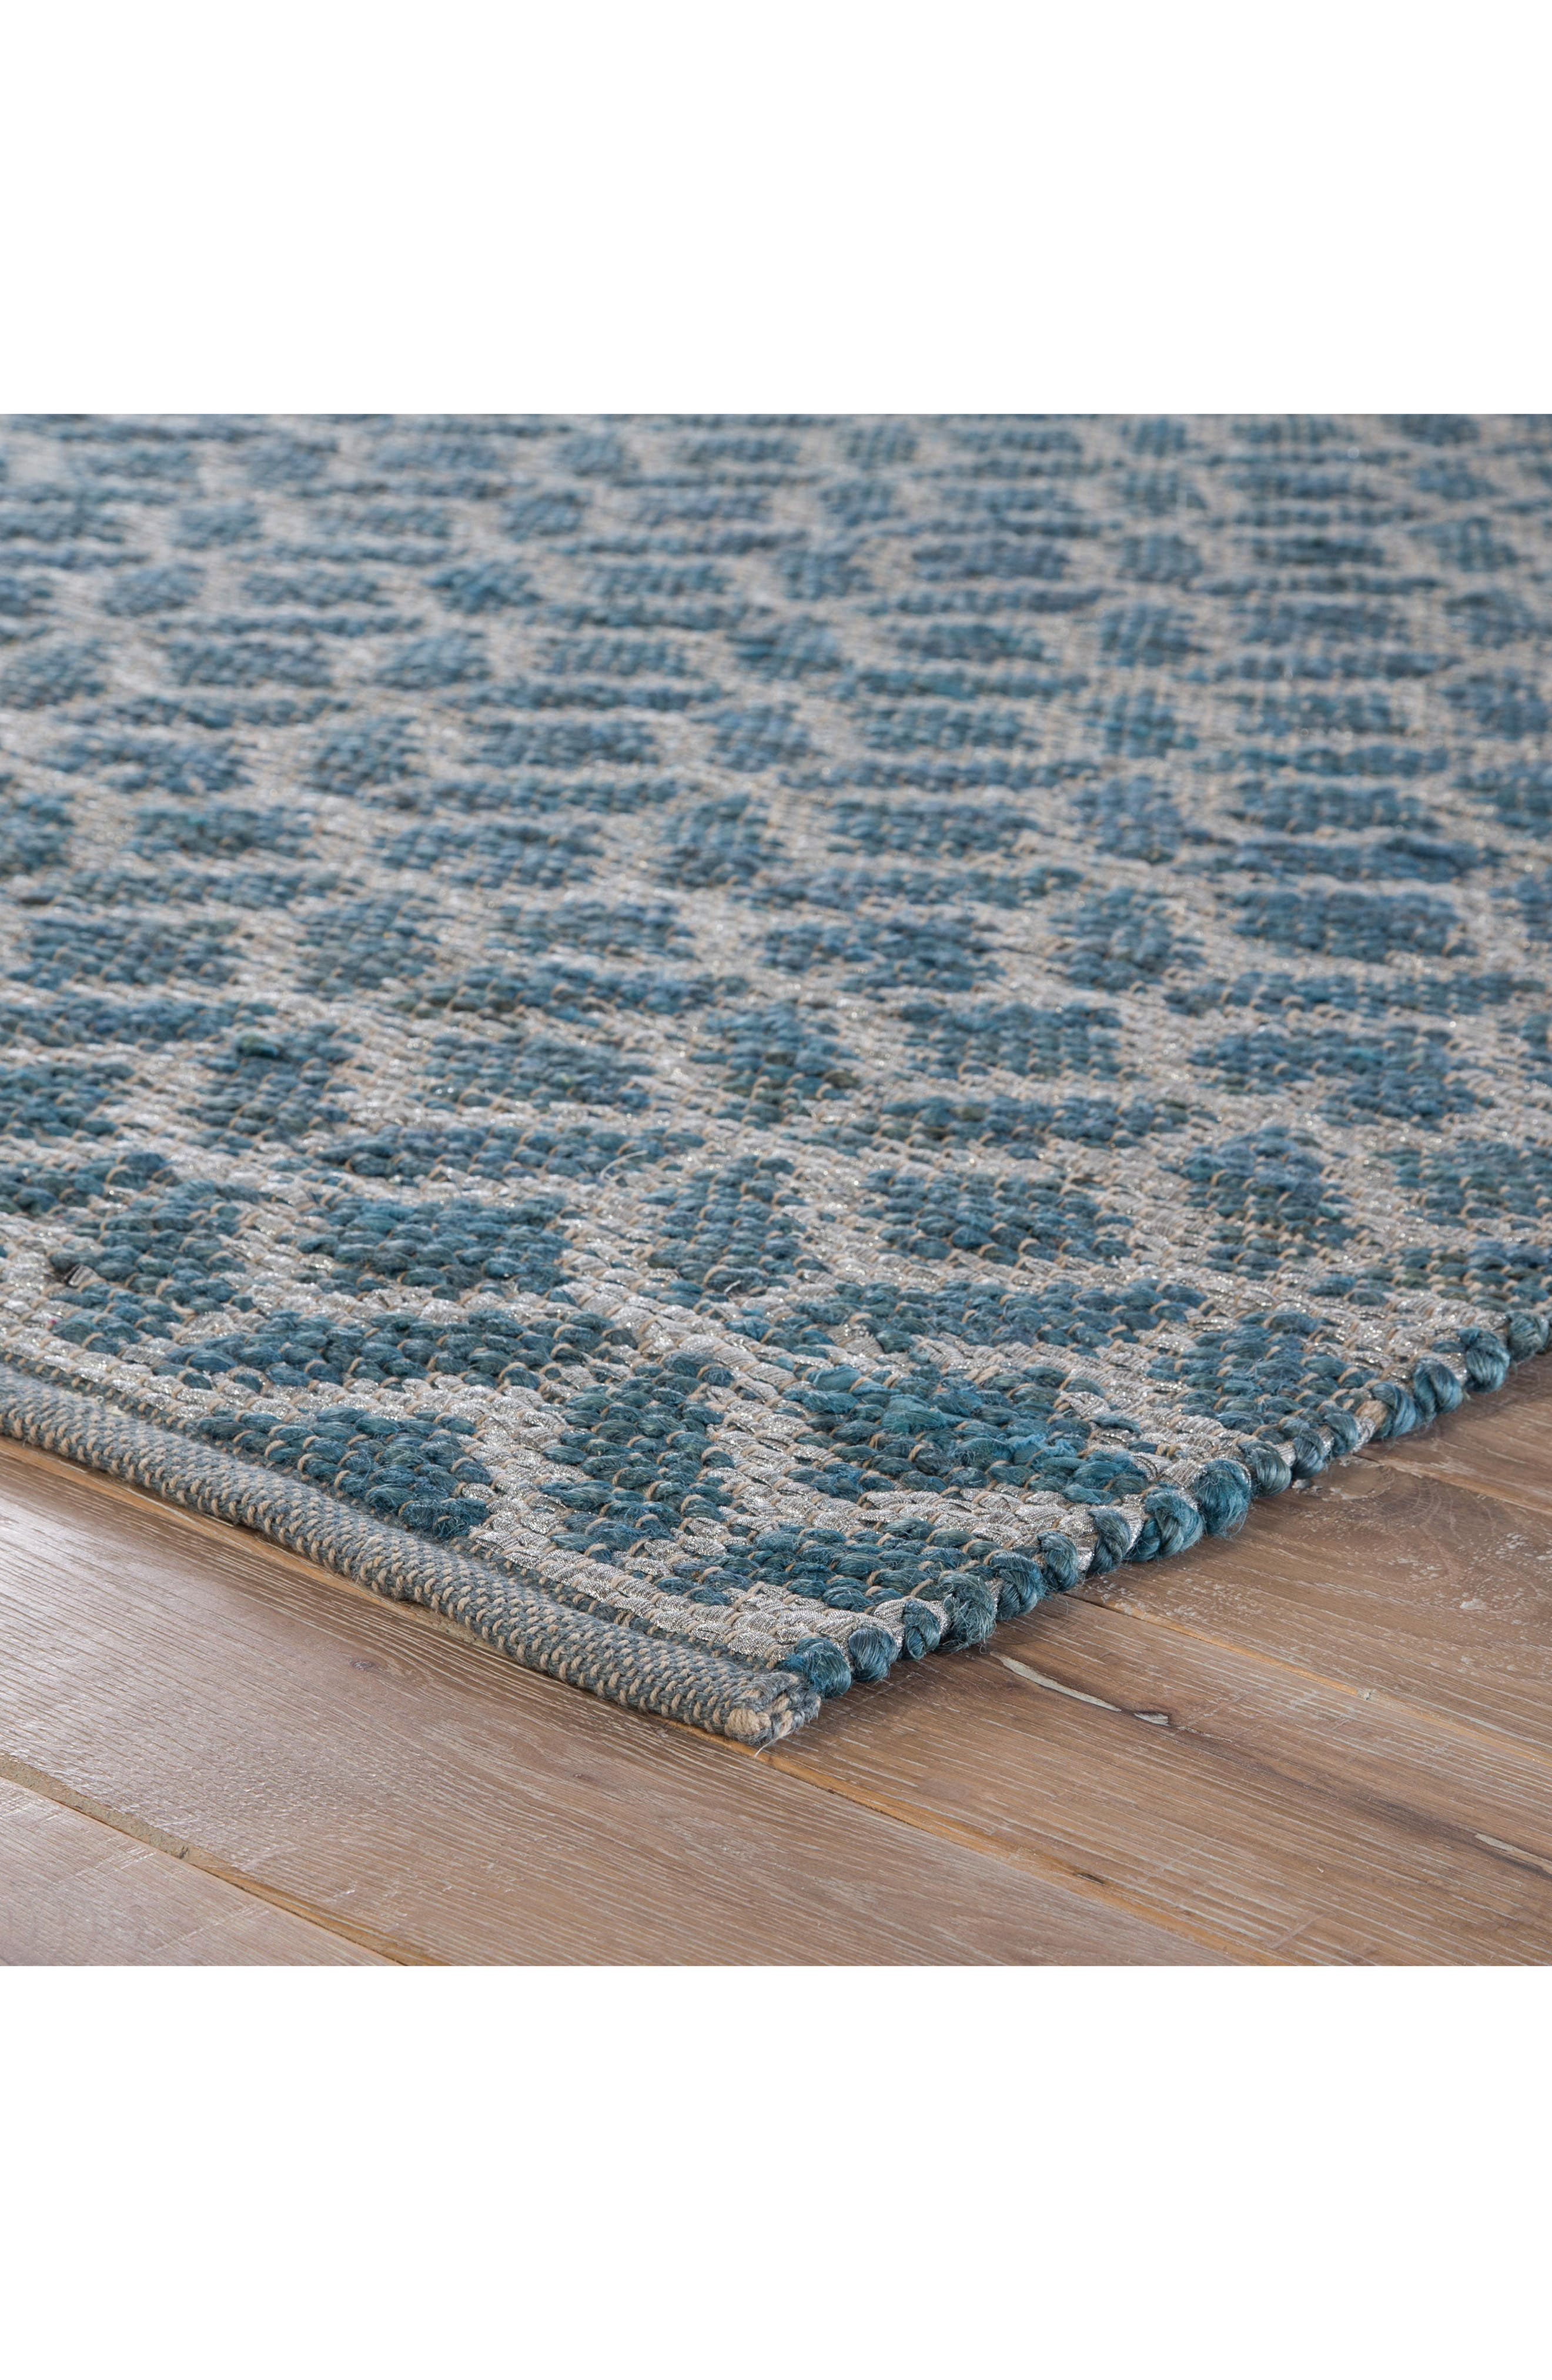 Calm Waters Rug,                             Alternate thumbnail 3, color,                             INDIAN TEAL/ SILVER